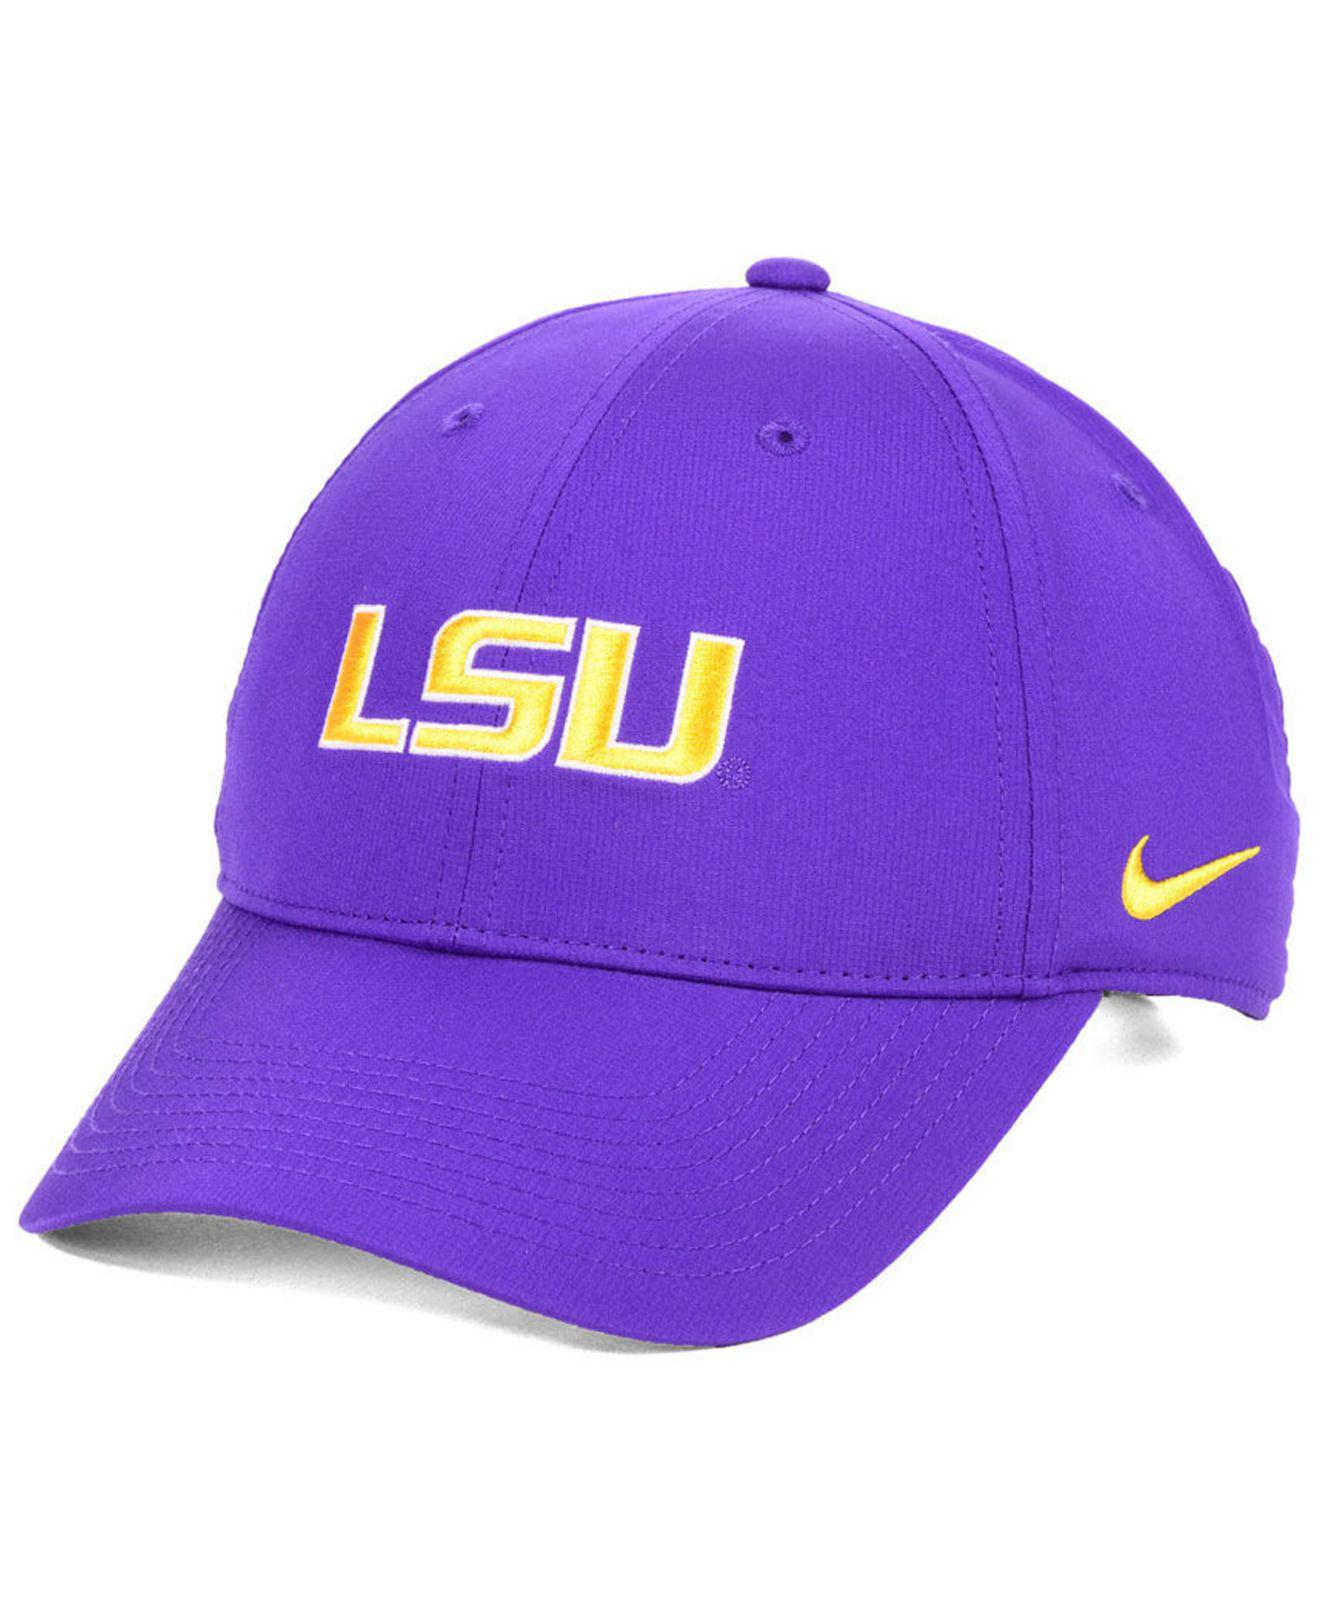 buy popular ee048 f8659 Nike. Men s Purple Lsu Tigers Dri-fit Adjustable Cap